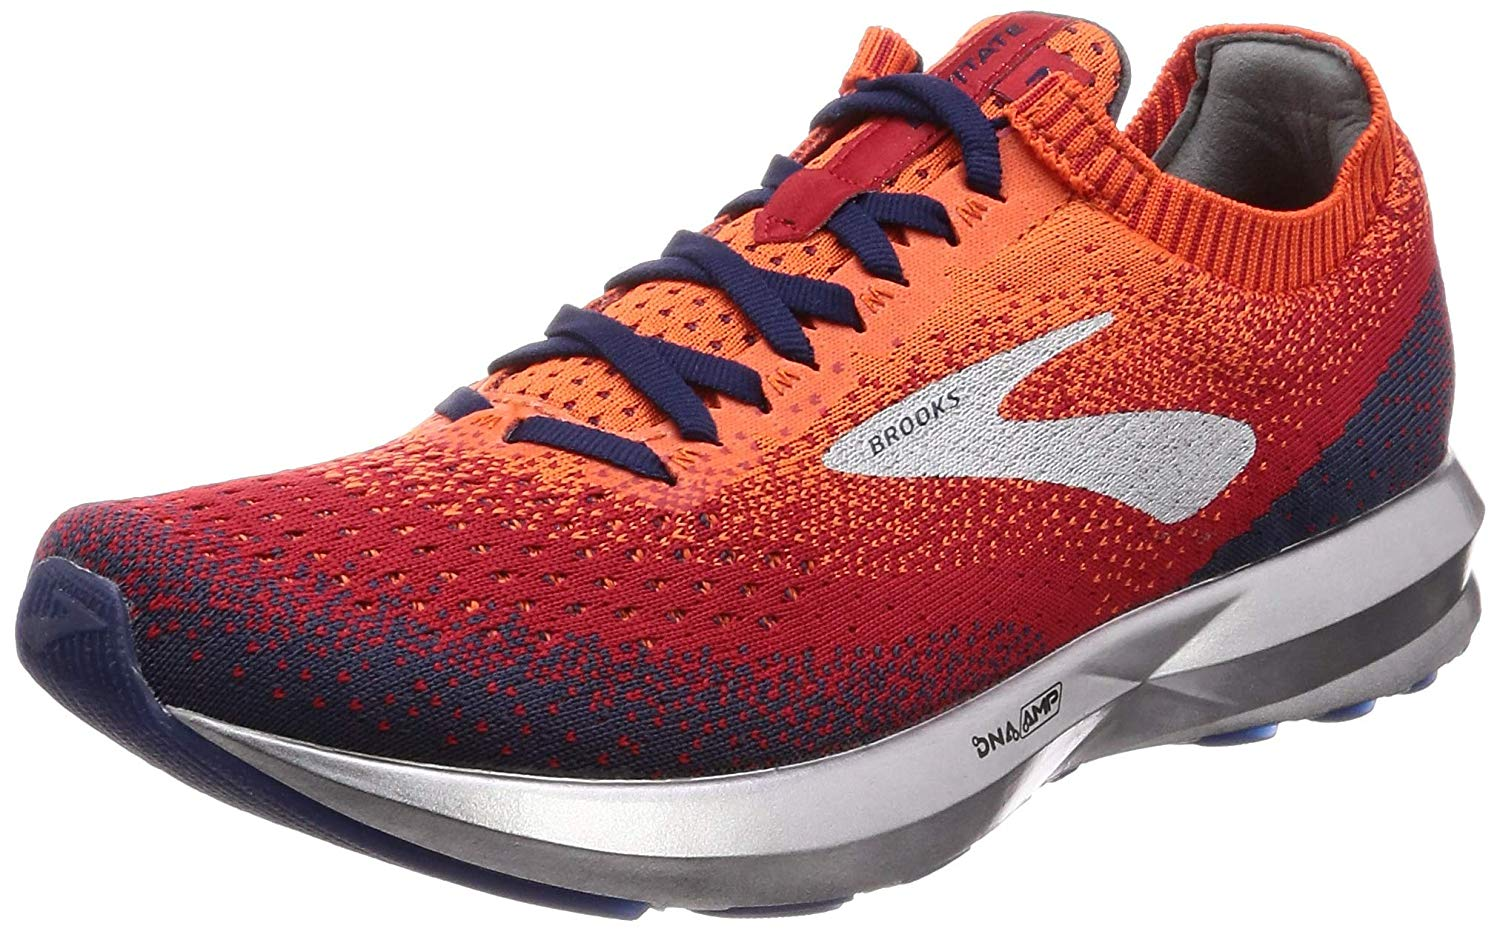 544c6aaca42 Details about Brooks Mens Levitate 2 Orange Trainers Gym Sports Running  Shoes